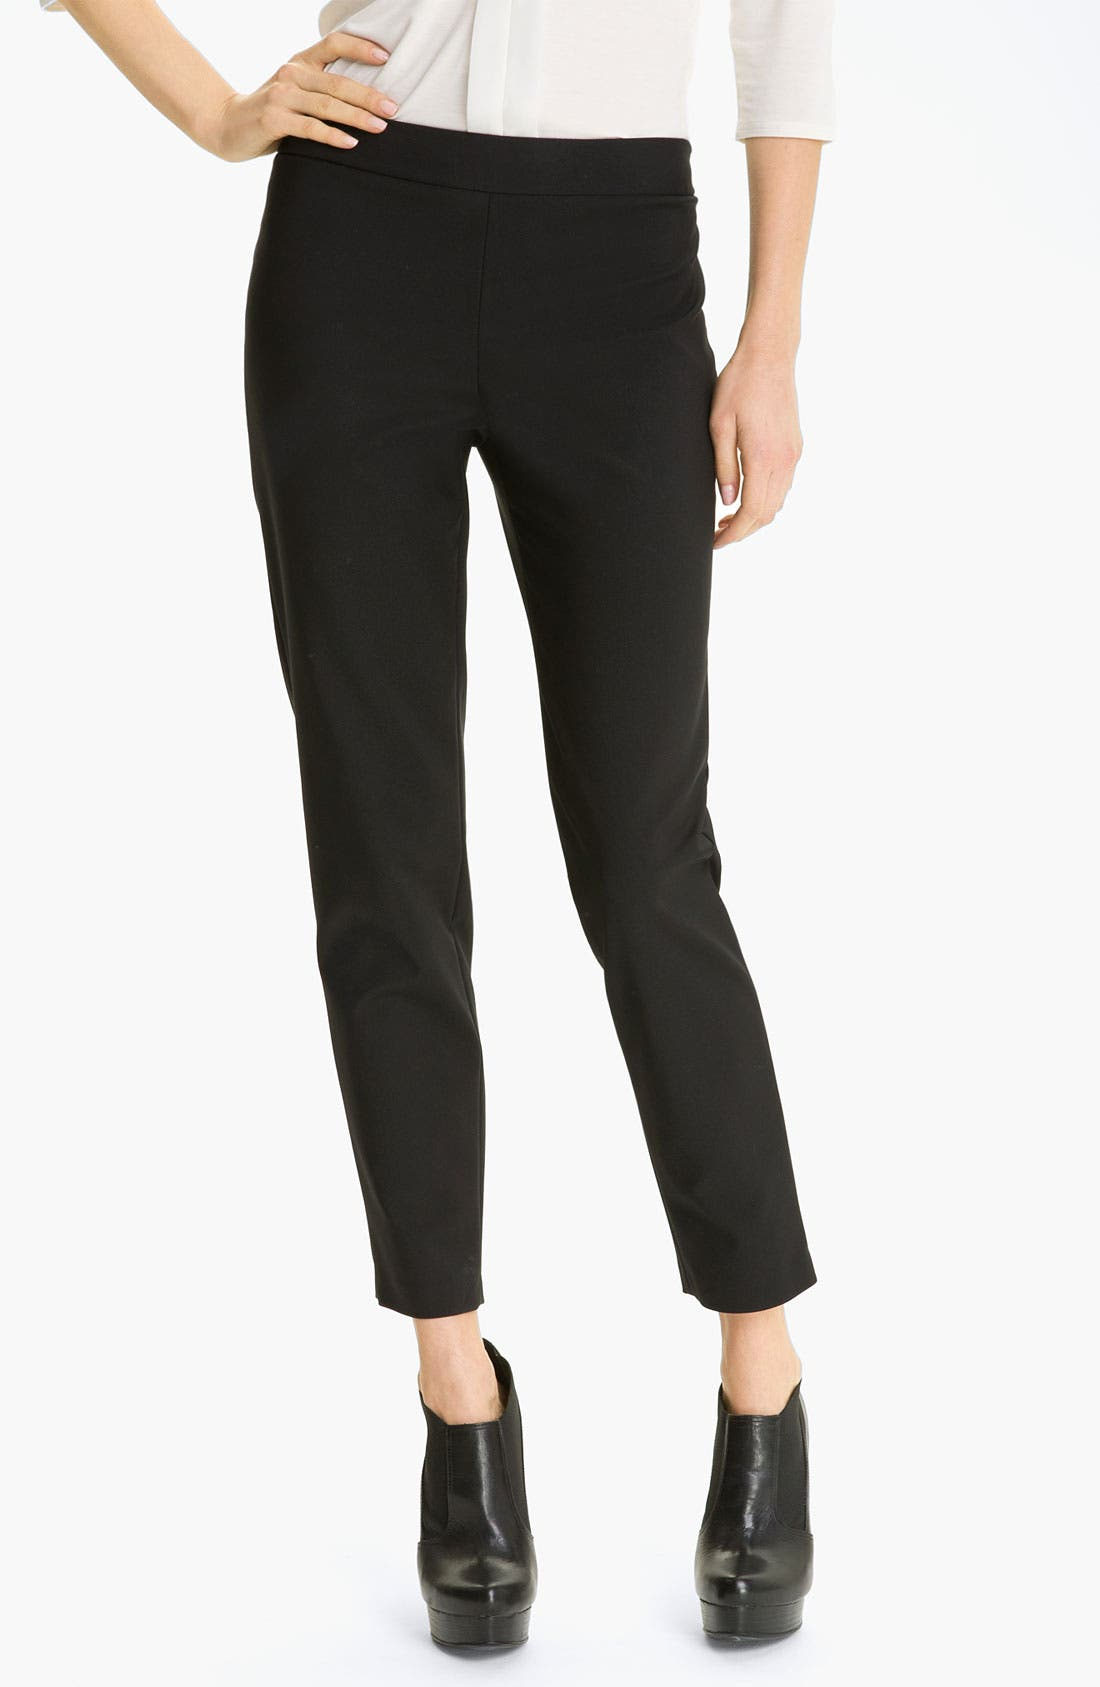 Alternate Image 1 Selected - Kenneth Cole New York 'Chloe' Cigarette Pants (Petite)